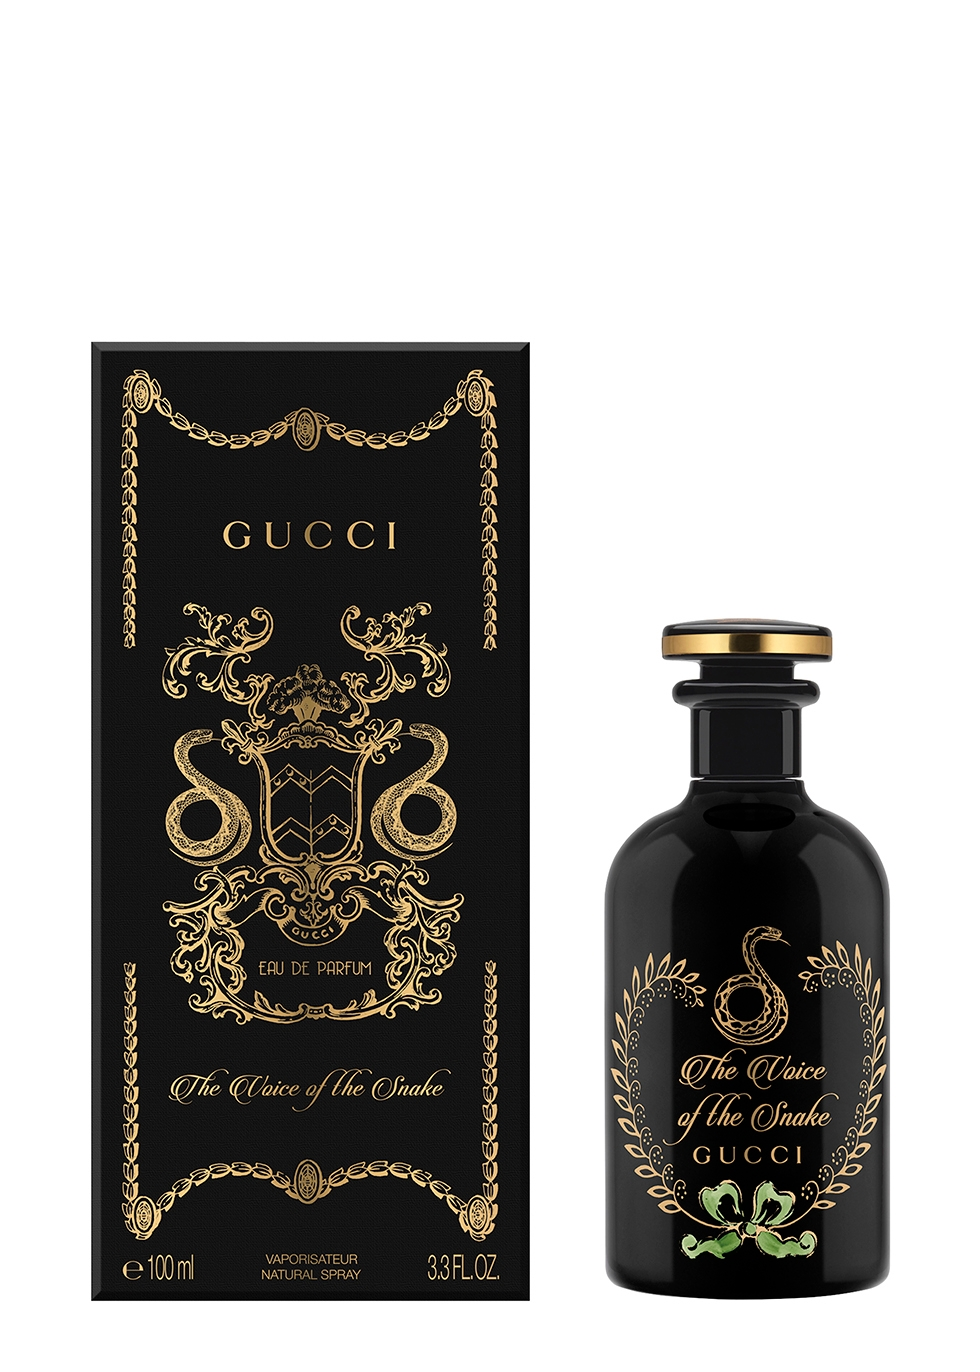 The Alchemist's Garden The Voice Of The Snake Eau De Parfum 100ml - Gucci